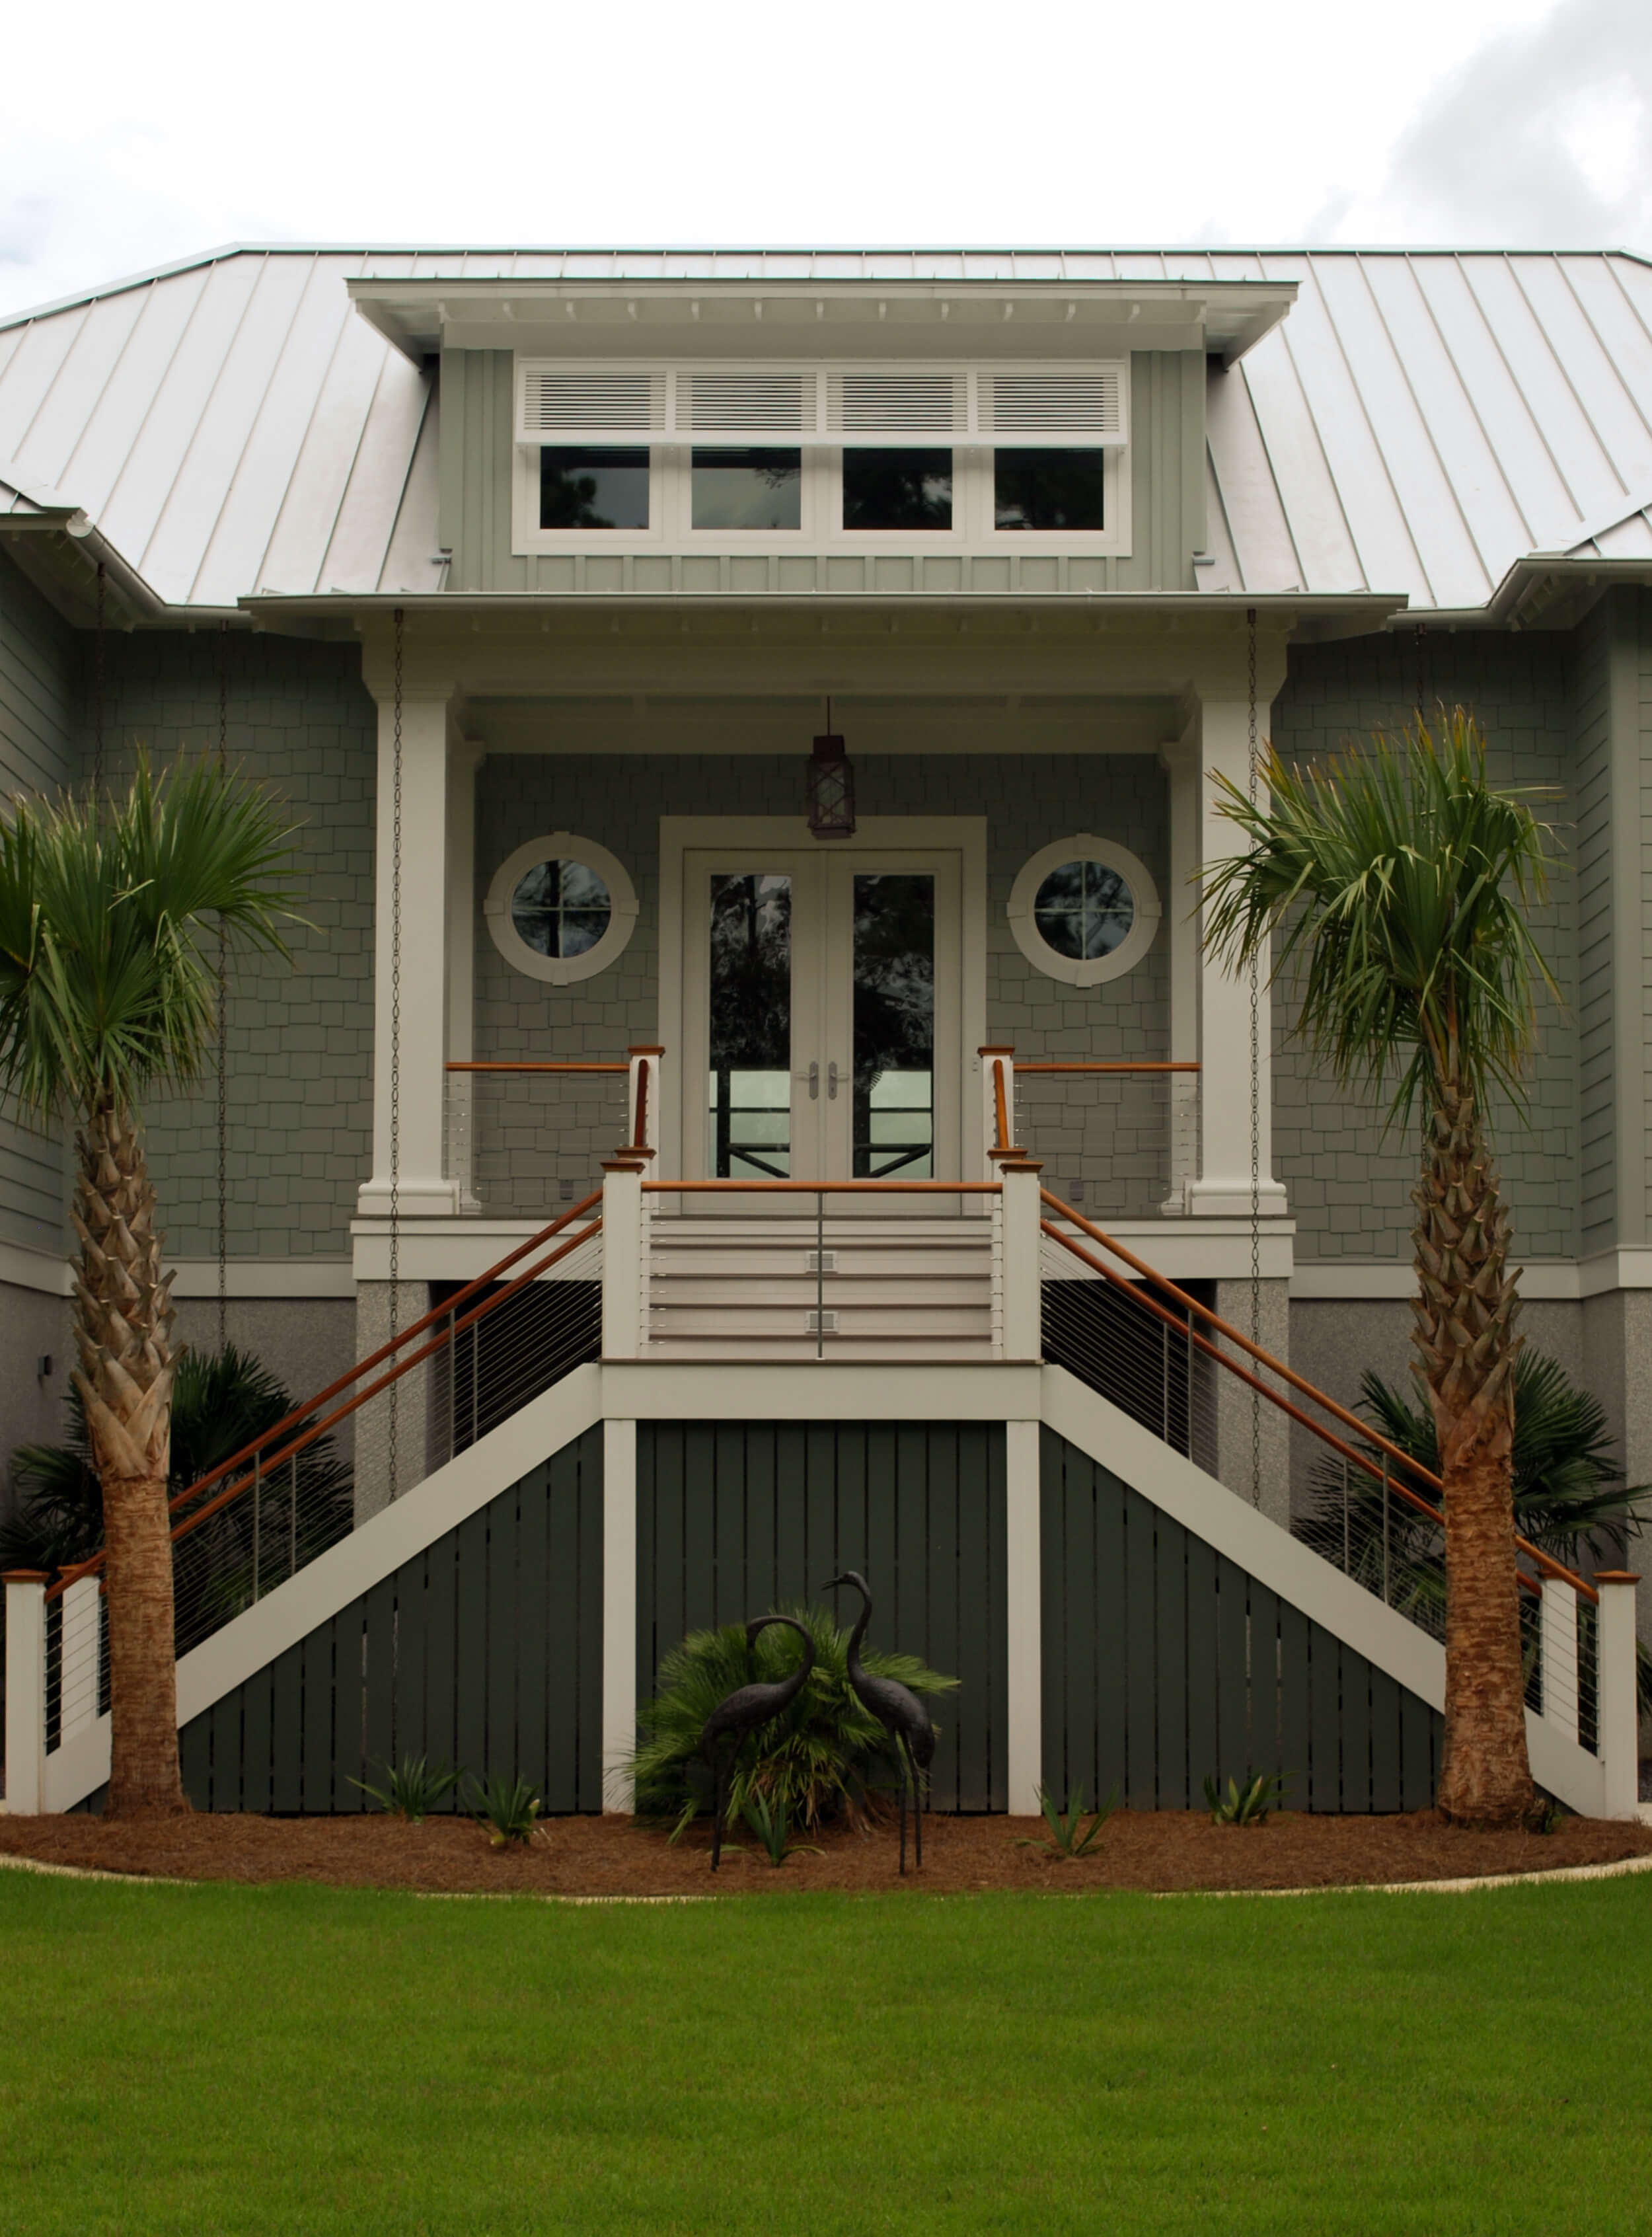 Head-on view of front staircase. Port windows and palm trees accentuate nautical theme.